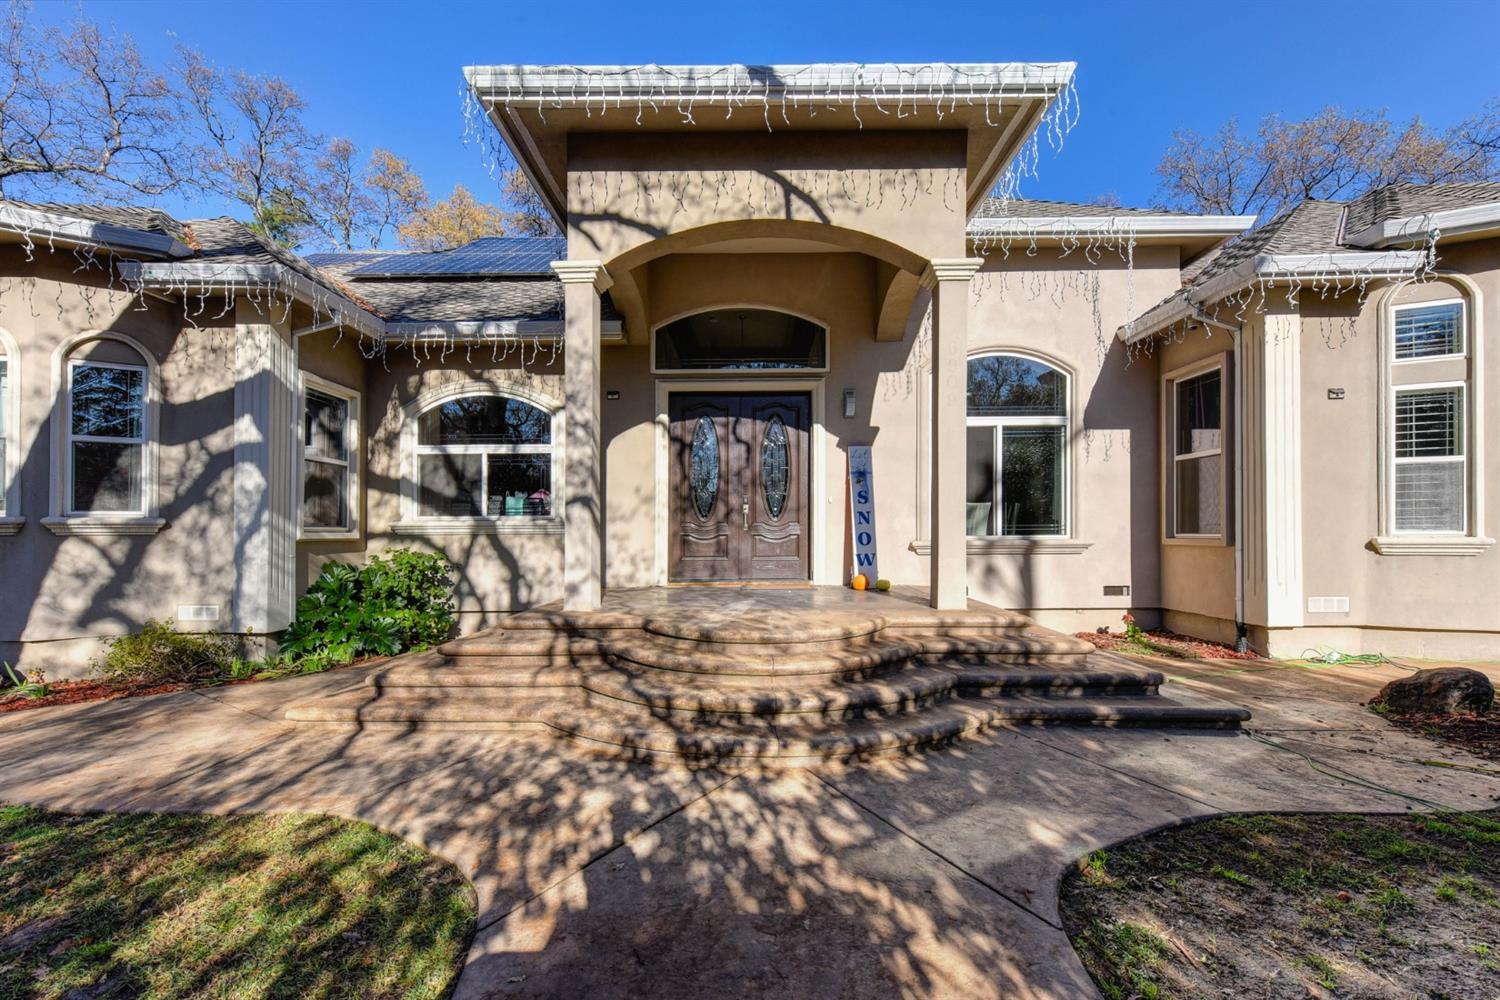 TWO HOMES on one lot in GRANITE BAY! Main house is a single story 3,500 sq ft home w/ 4 beds plus office, 3 1/2 baths & guest house is 750 sq ft. Baths have been remodeled. A 7KW, OWNED SOLAR system installed 2 years ago! New furnace recently installed. LED recessed lights throughout w/dimmer switches, Watchdog security system w/8 cameras, 5 motion sensors, each window & door has a sensor as well. Gourmet kitchen boasts cherry cabinets, granite counters, SS high-end appliances, built-in refrigerator, & new 6 gas burner stove. New paint throughout. 2nd home is 2 beds, 1 bath, family room, separate laundry room w/outside access, enclosed patio deck off family room sliding doors, new quartz counters in spacious kitchen, dining area, fireplace,